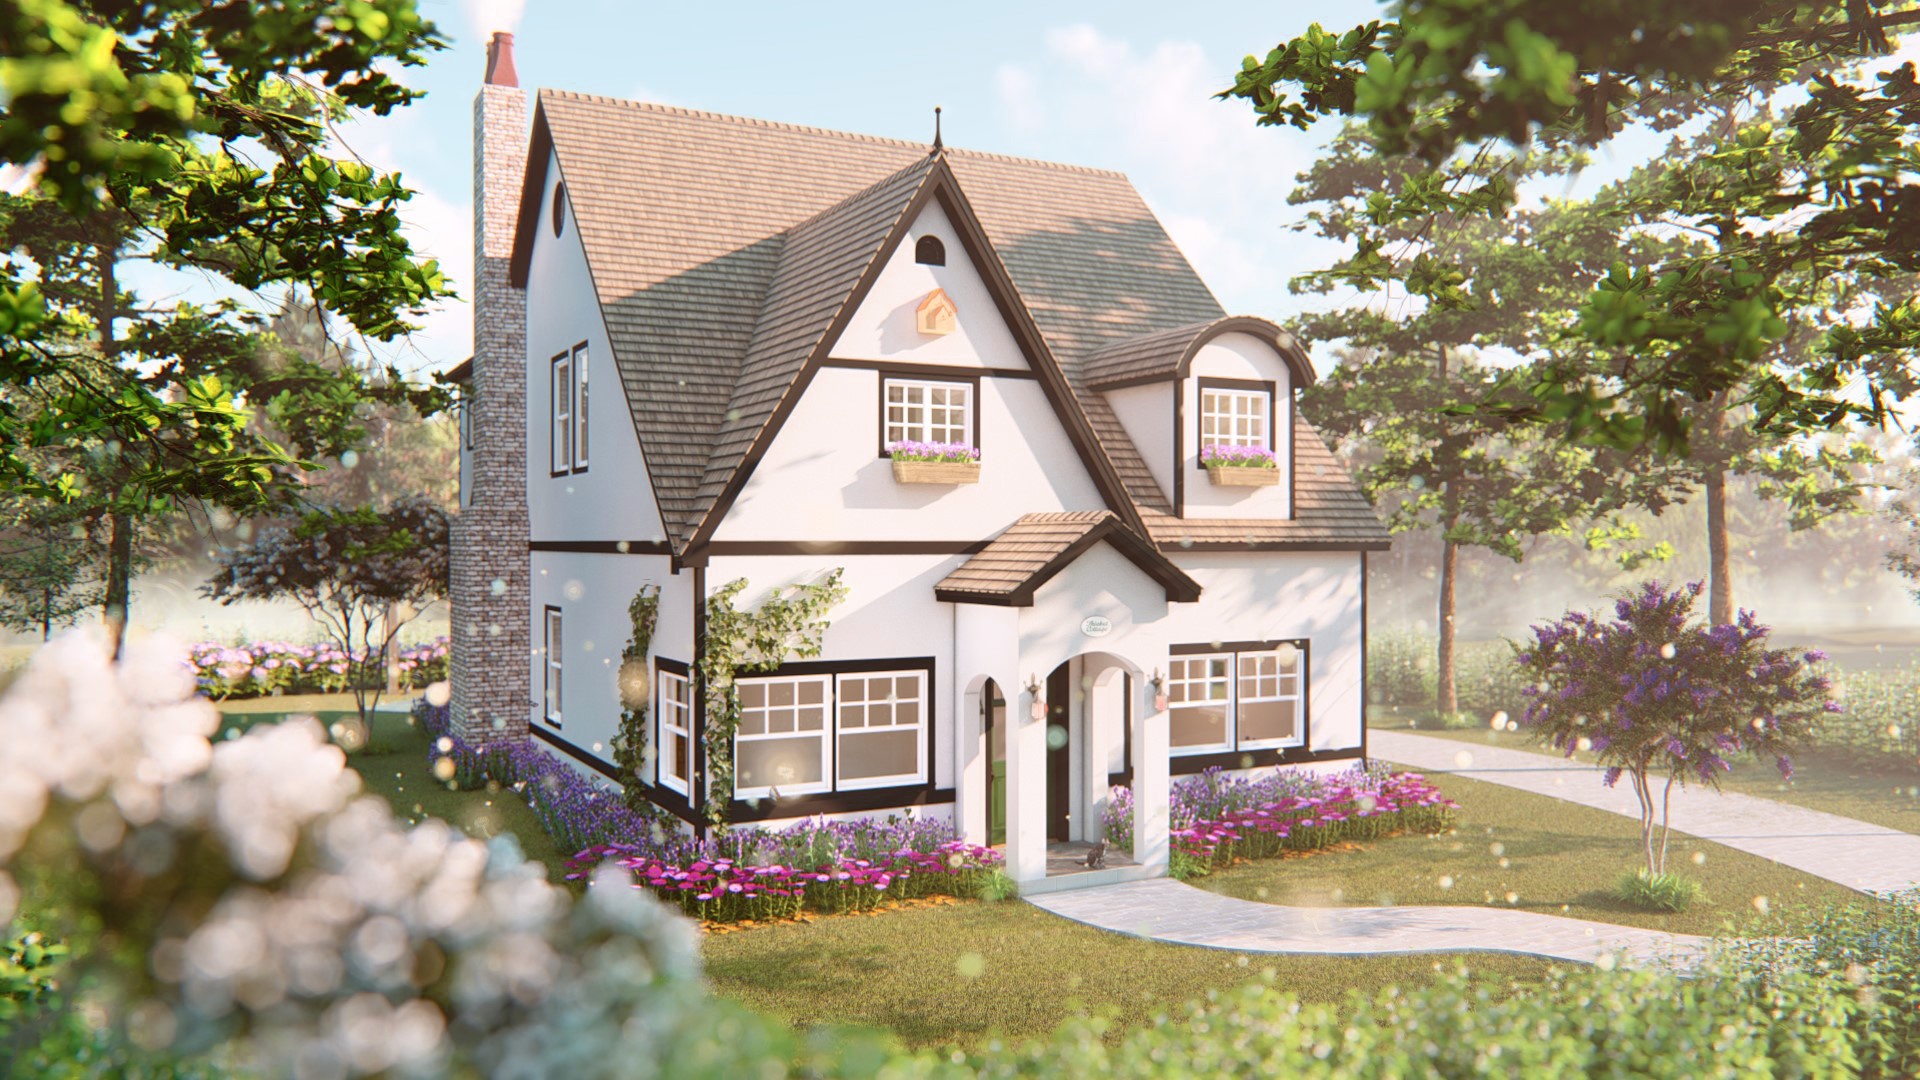 Custom Home Design - English Cottage Style